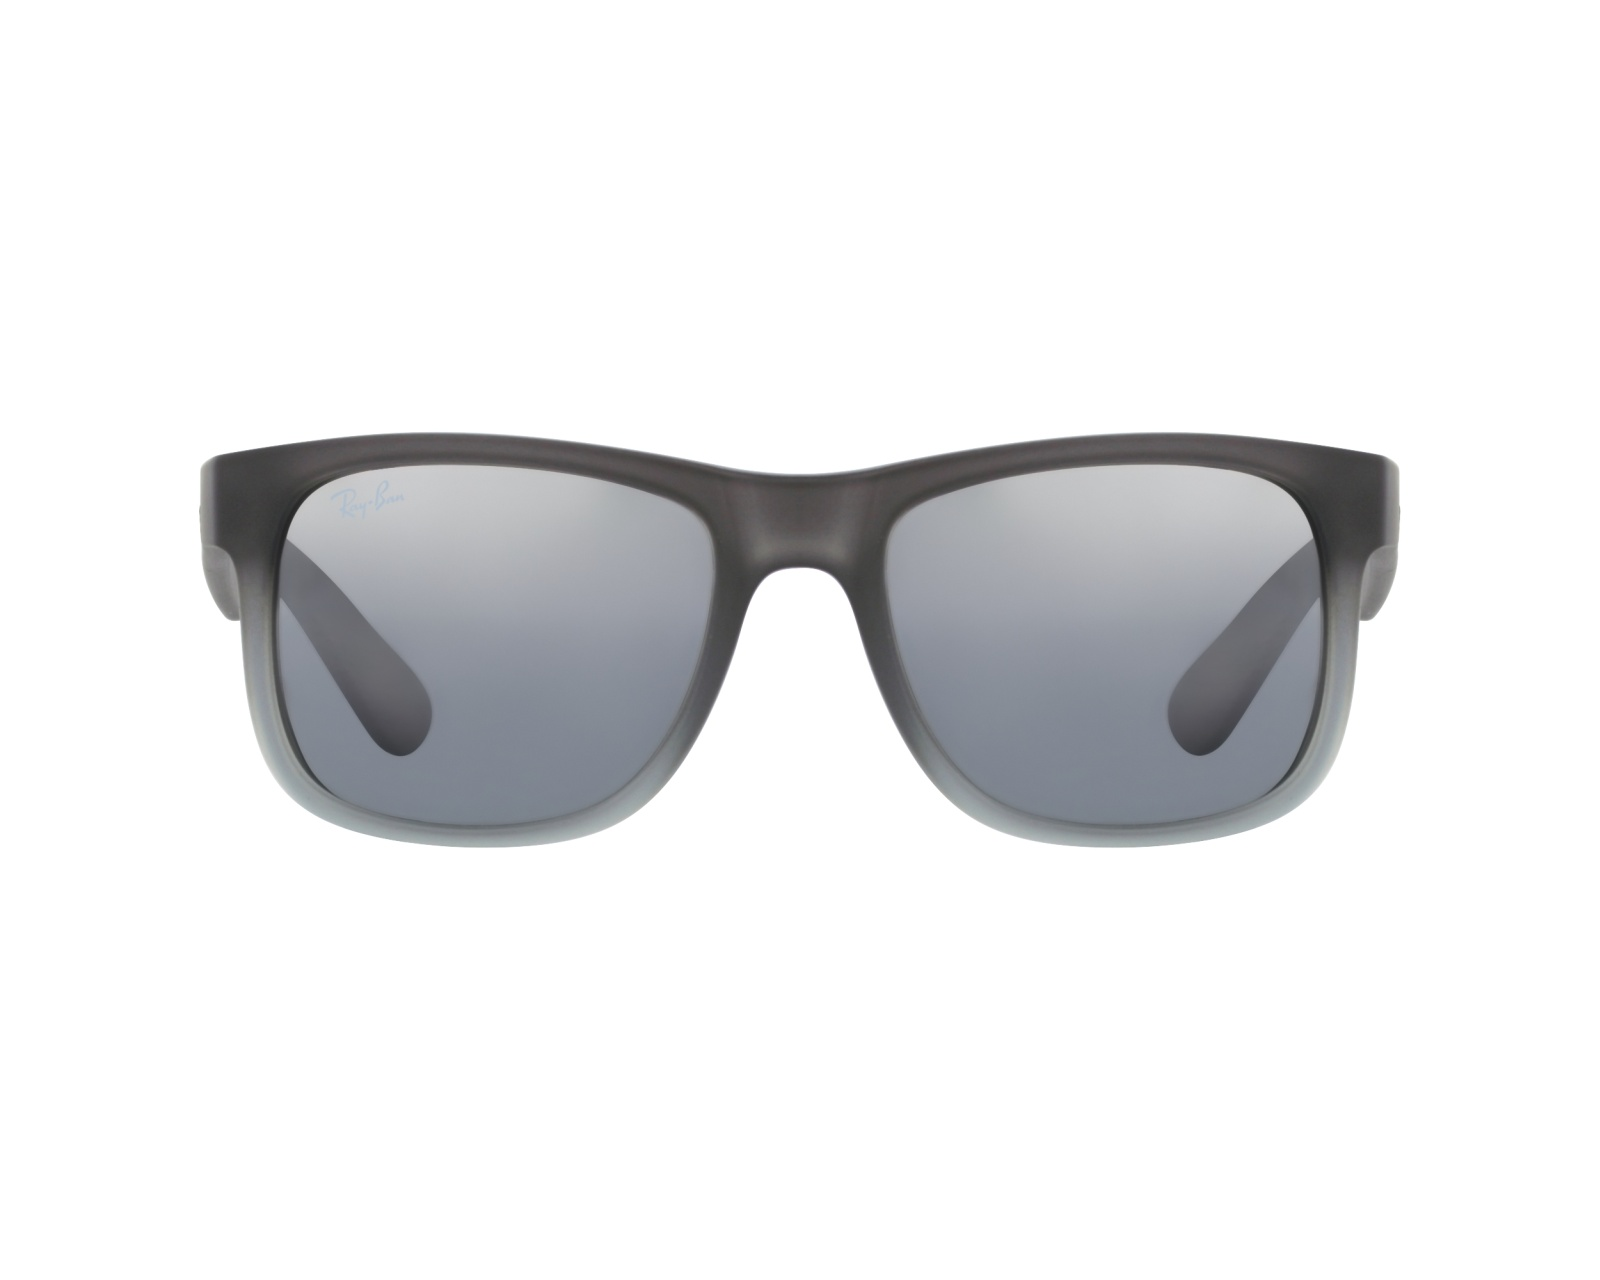 b707655552c5f Sunglasses Ray-Ban RB-4165 852 88 51-15 Grey profile view